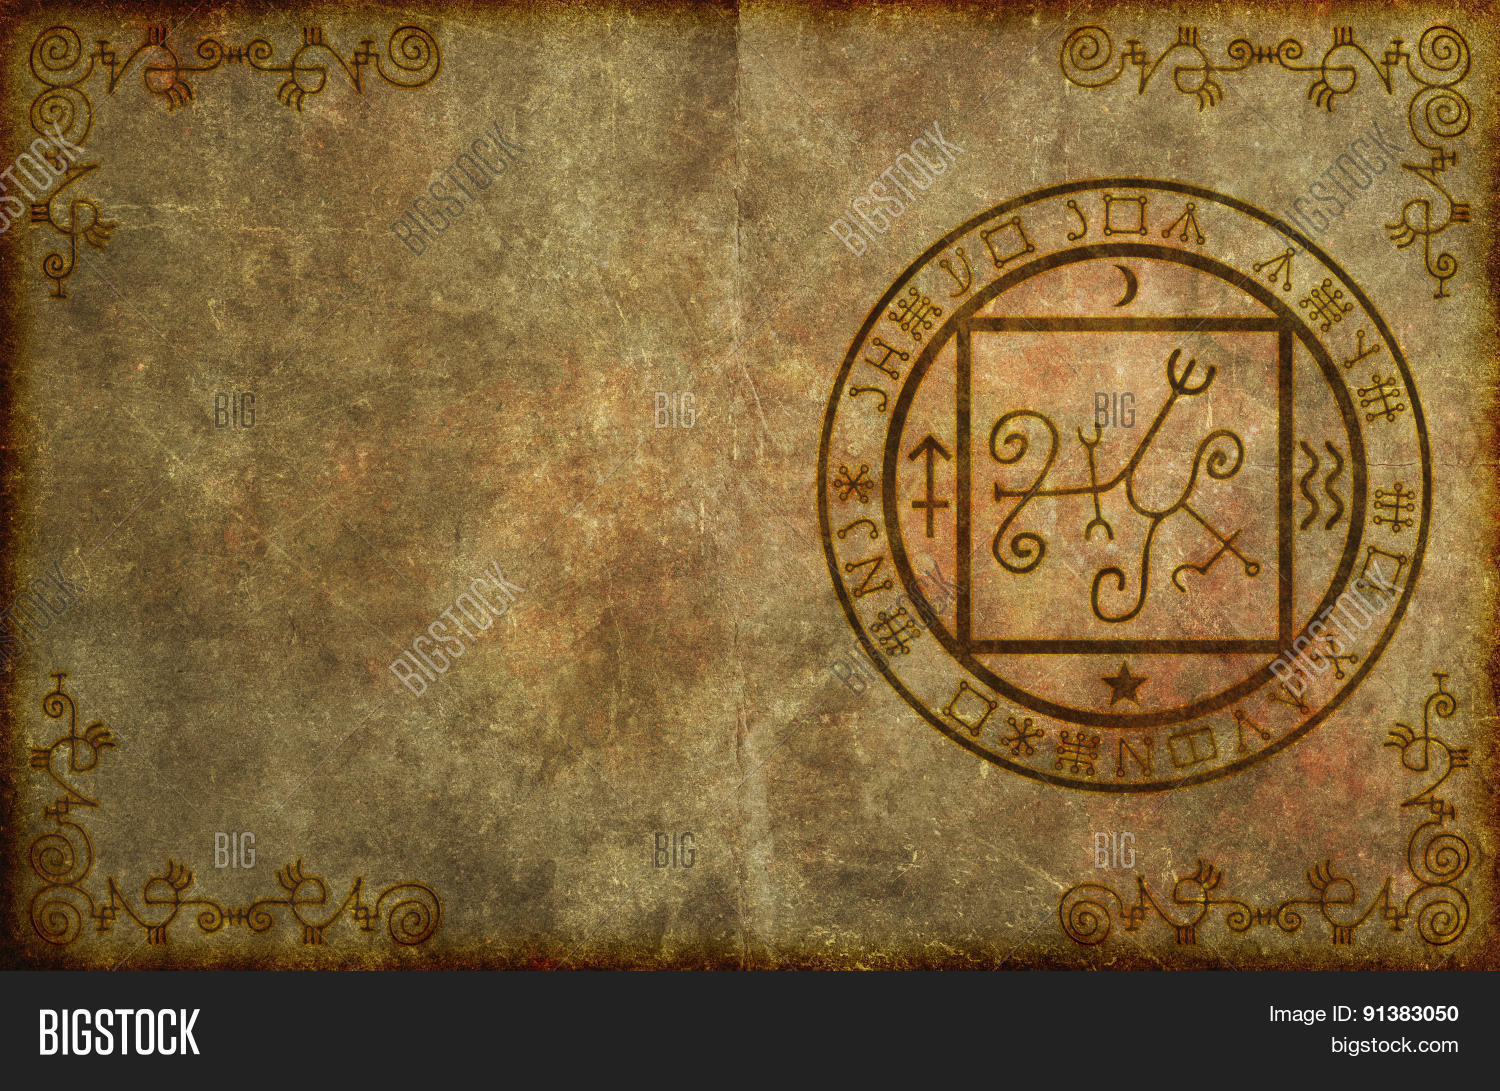 Ancient Magical Page Image Photo Free Trial Bigstock